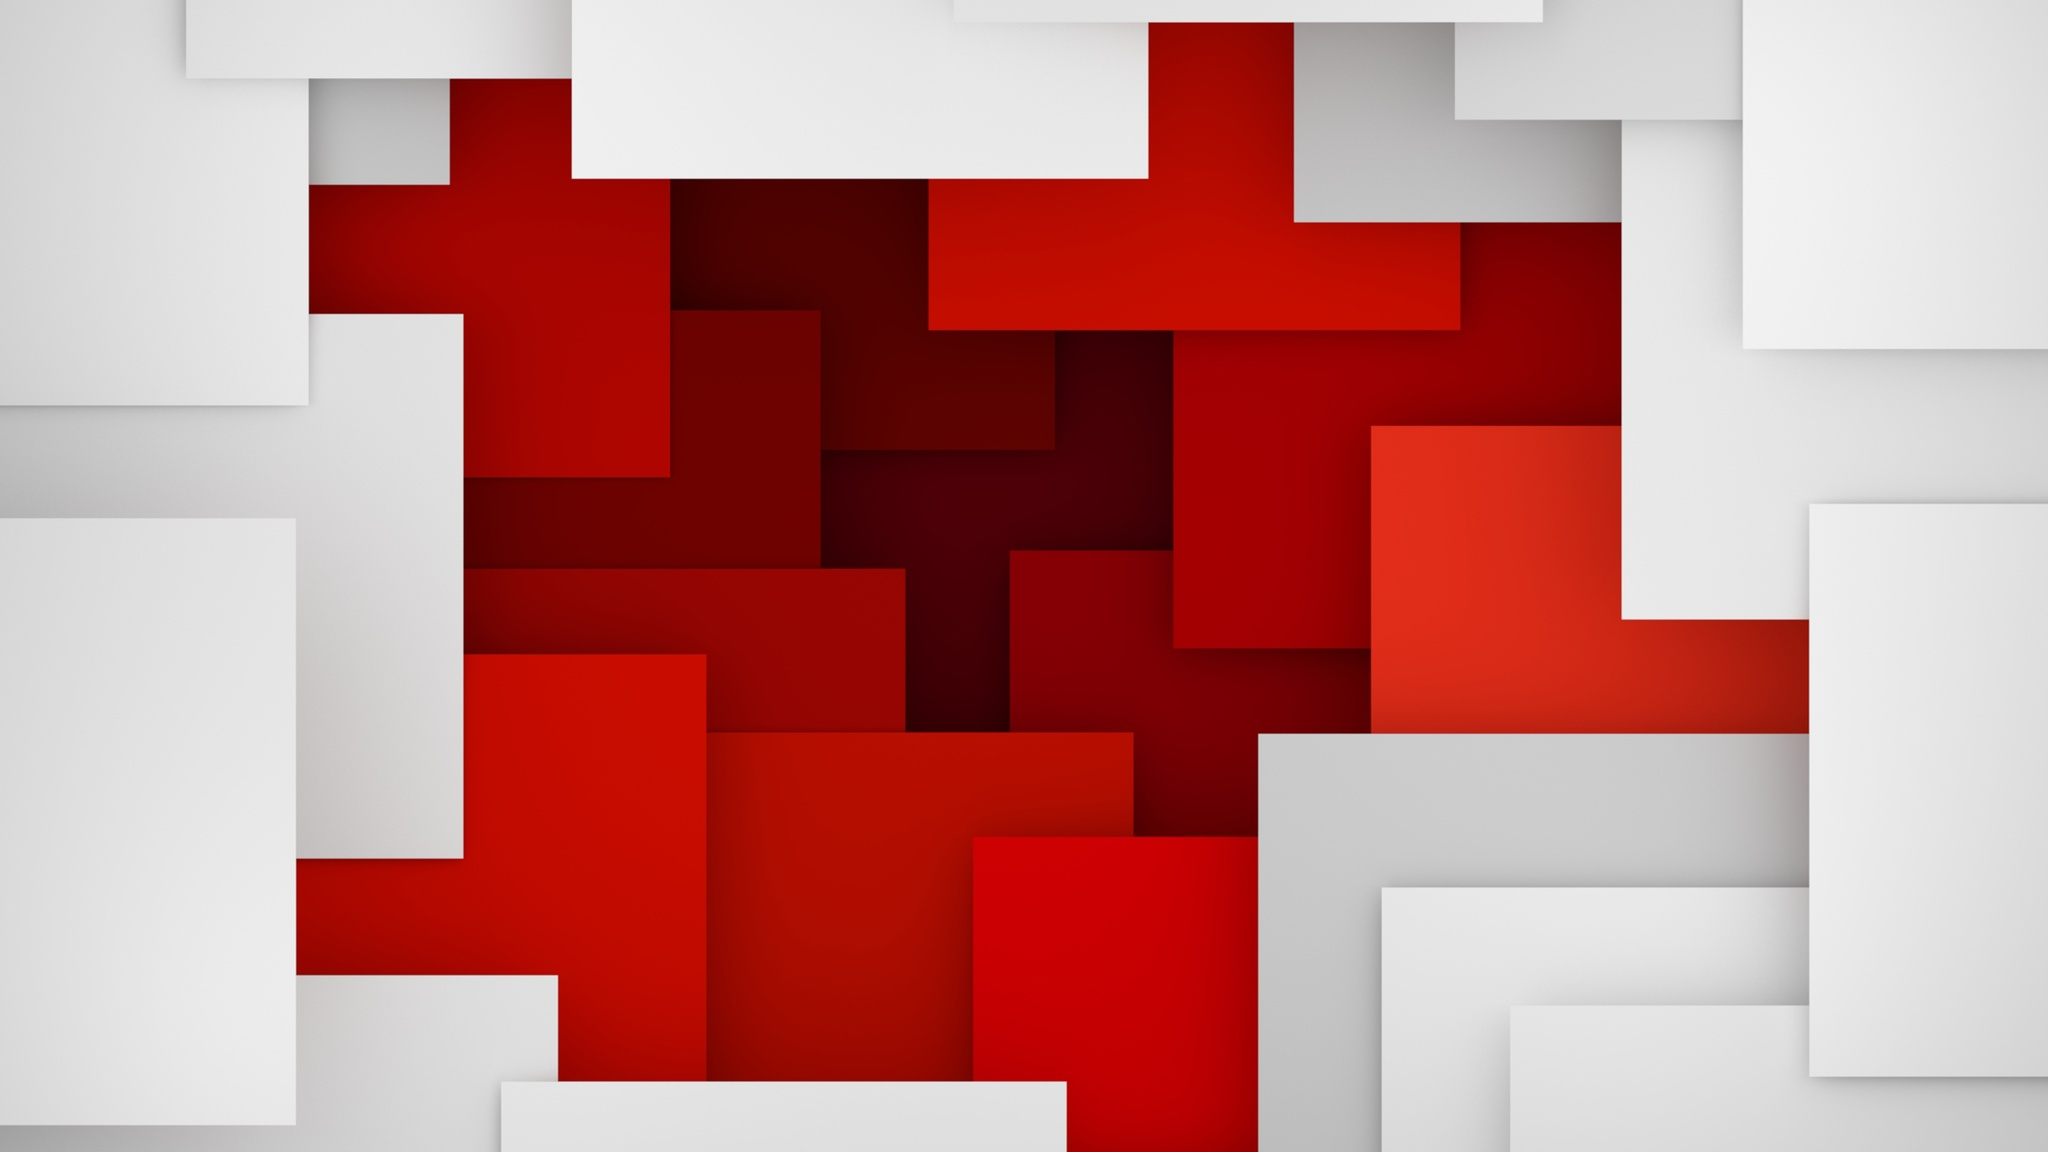 2048x1152 Artistic Geometry Red White 2048x1152 Resolution